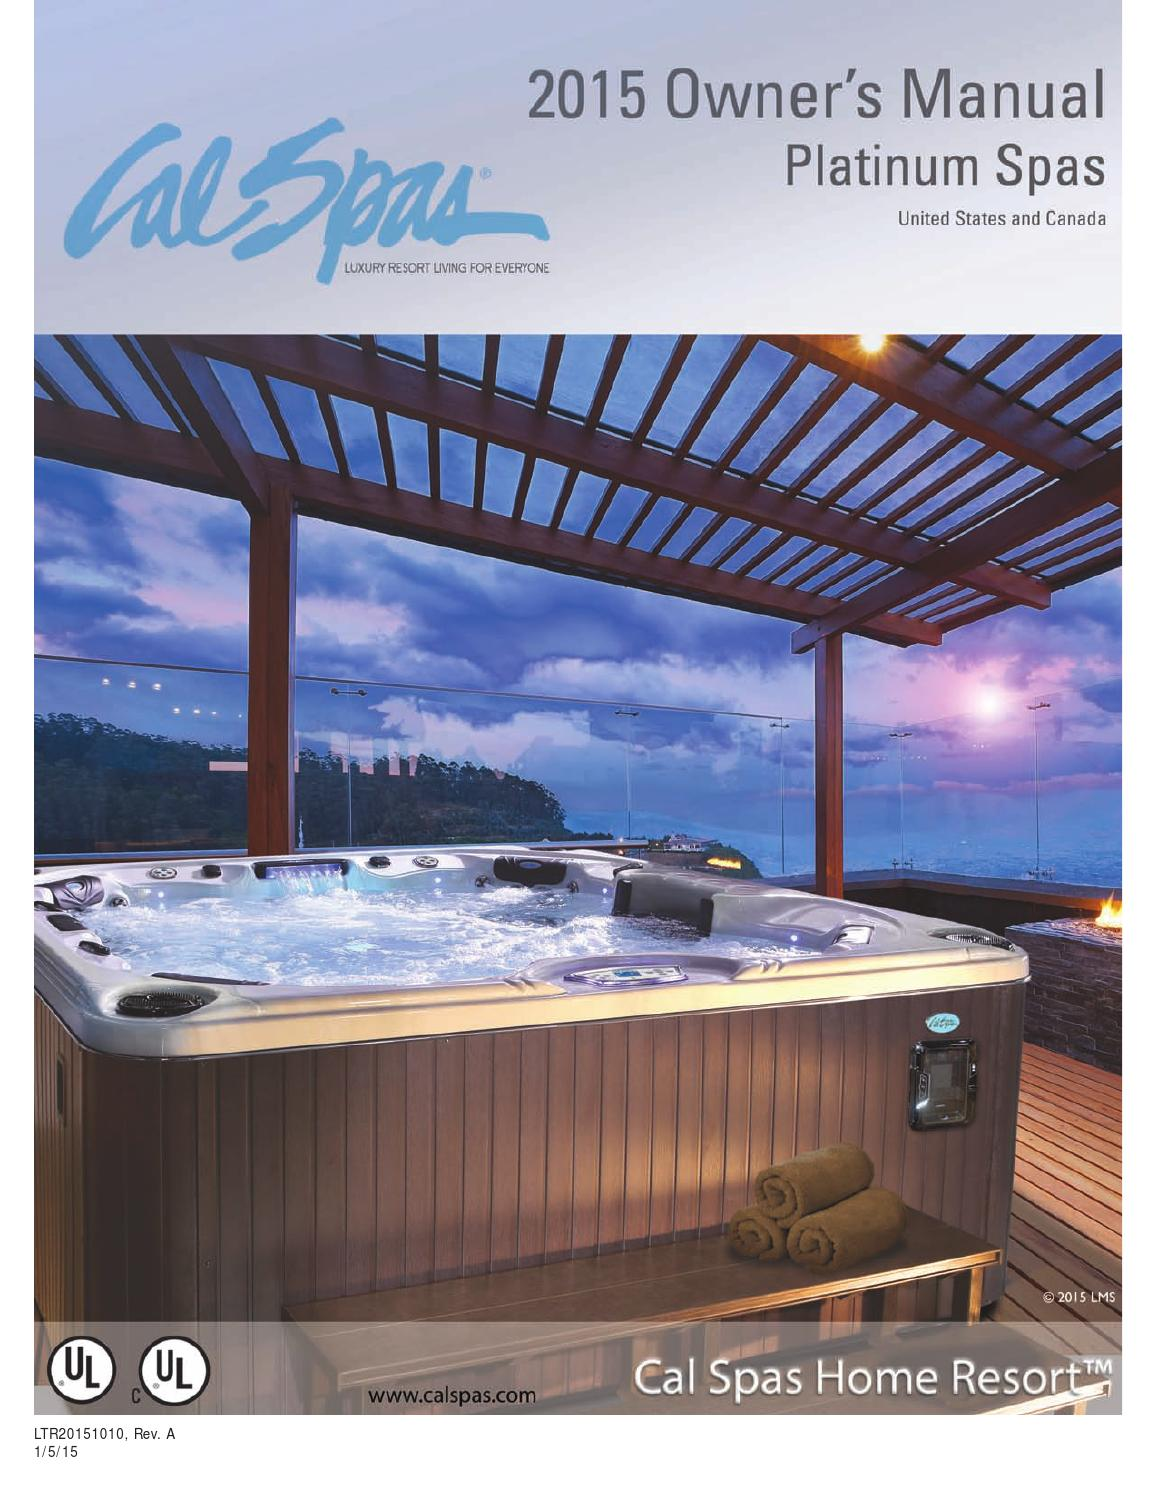 Jacuzzi Pool Filter Manual 2015 Platinum Spa Owner S Manual By Groupe Sima Issuu